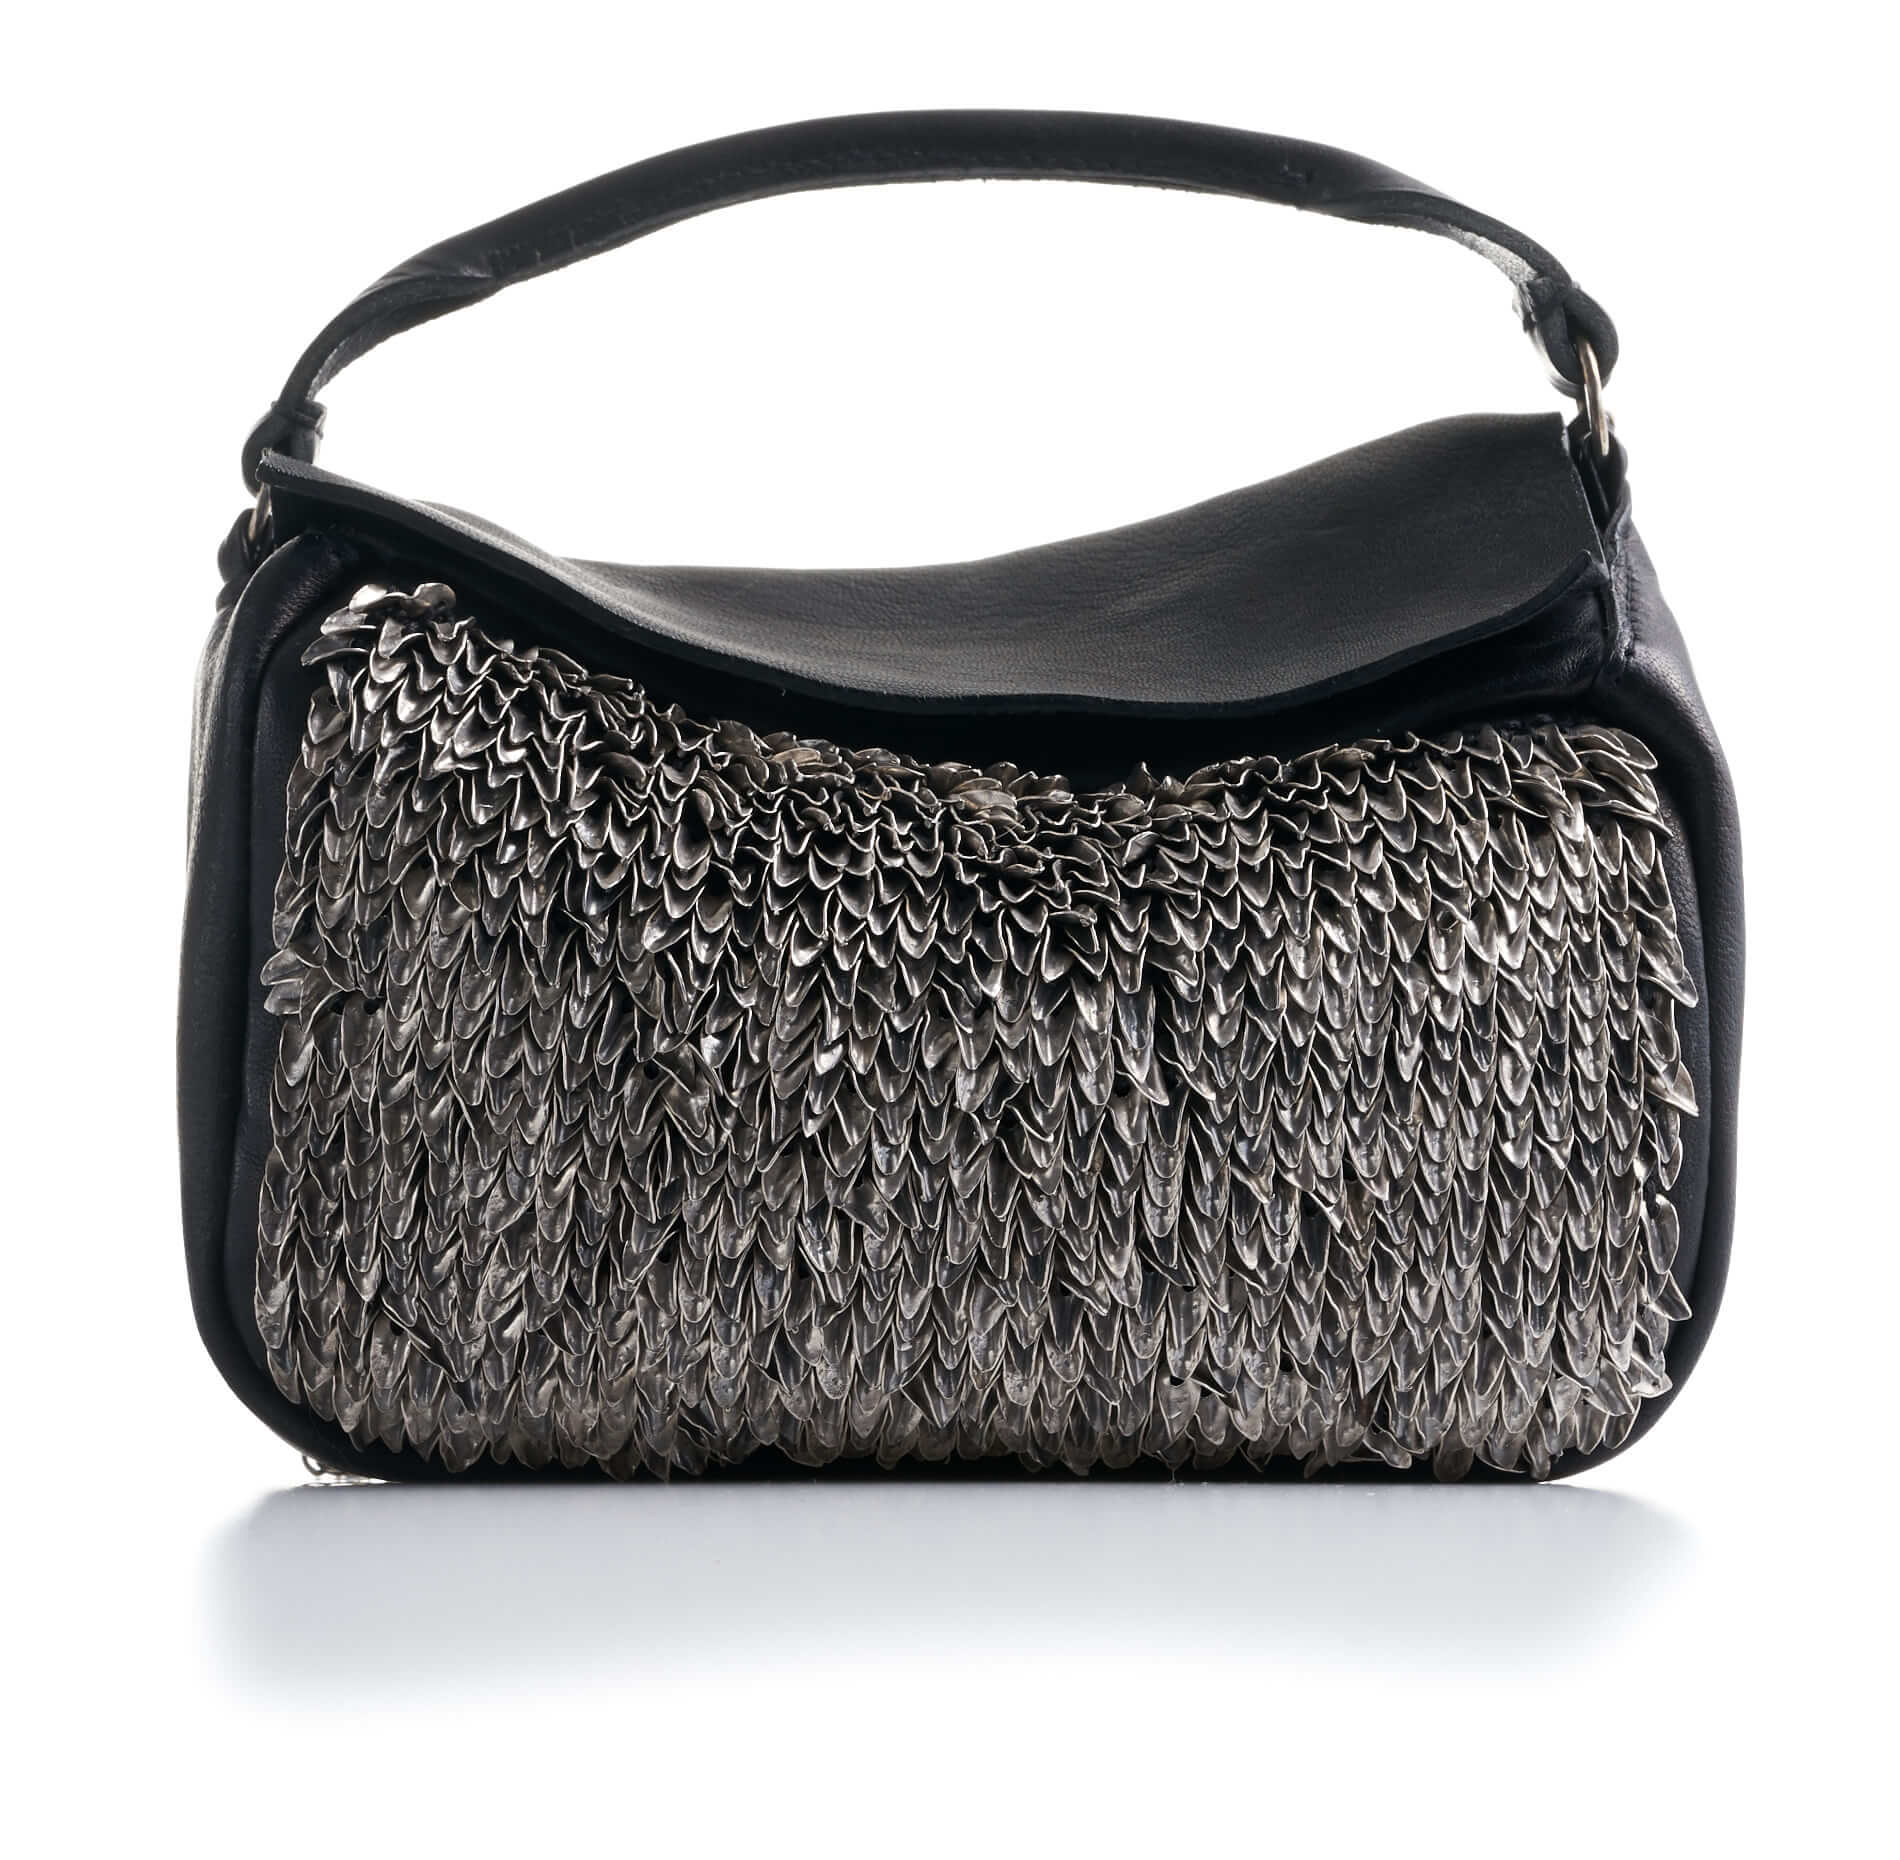 DANIELE BASTA | leather bag - BABA MIGNON FOGLIE front